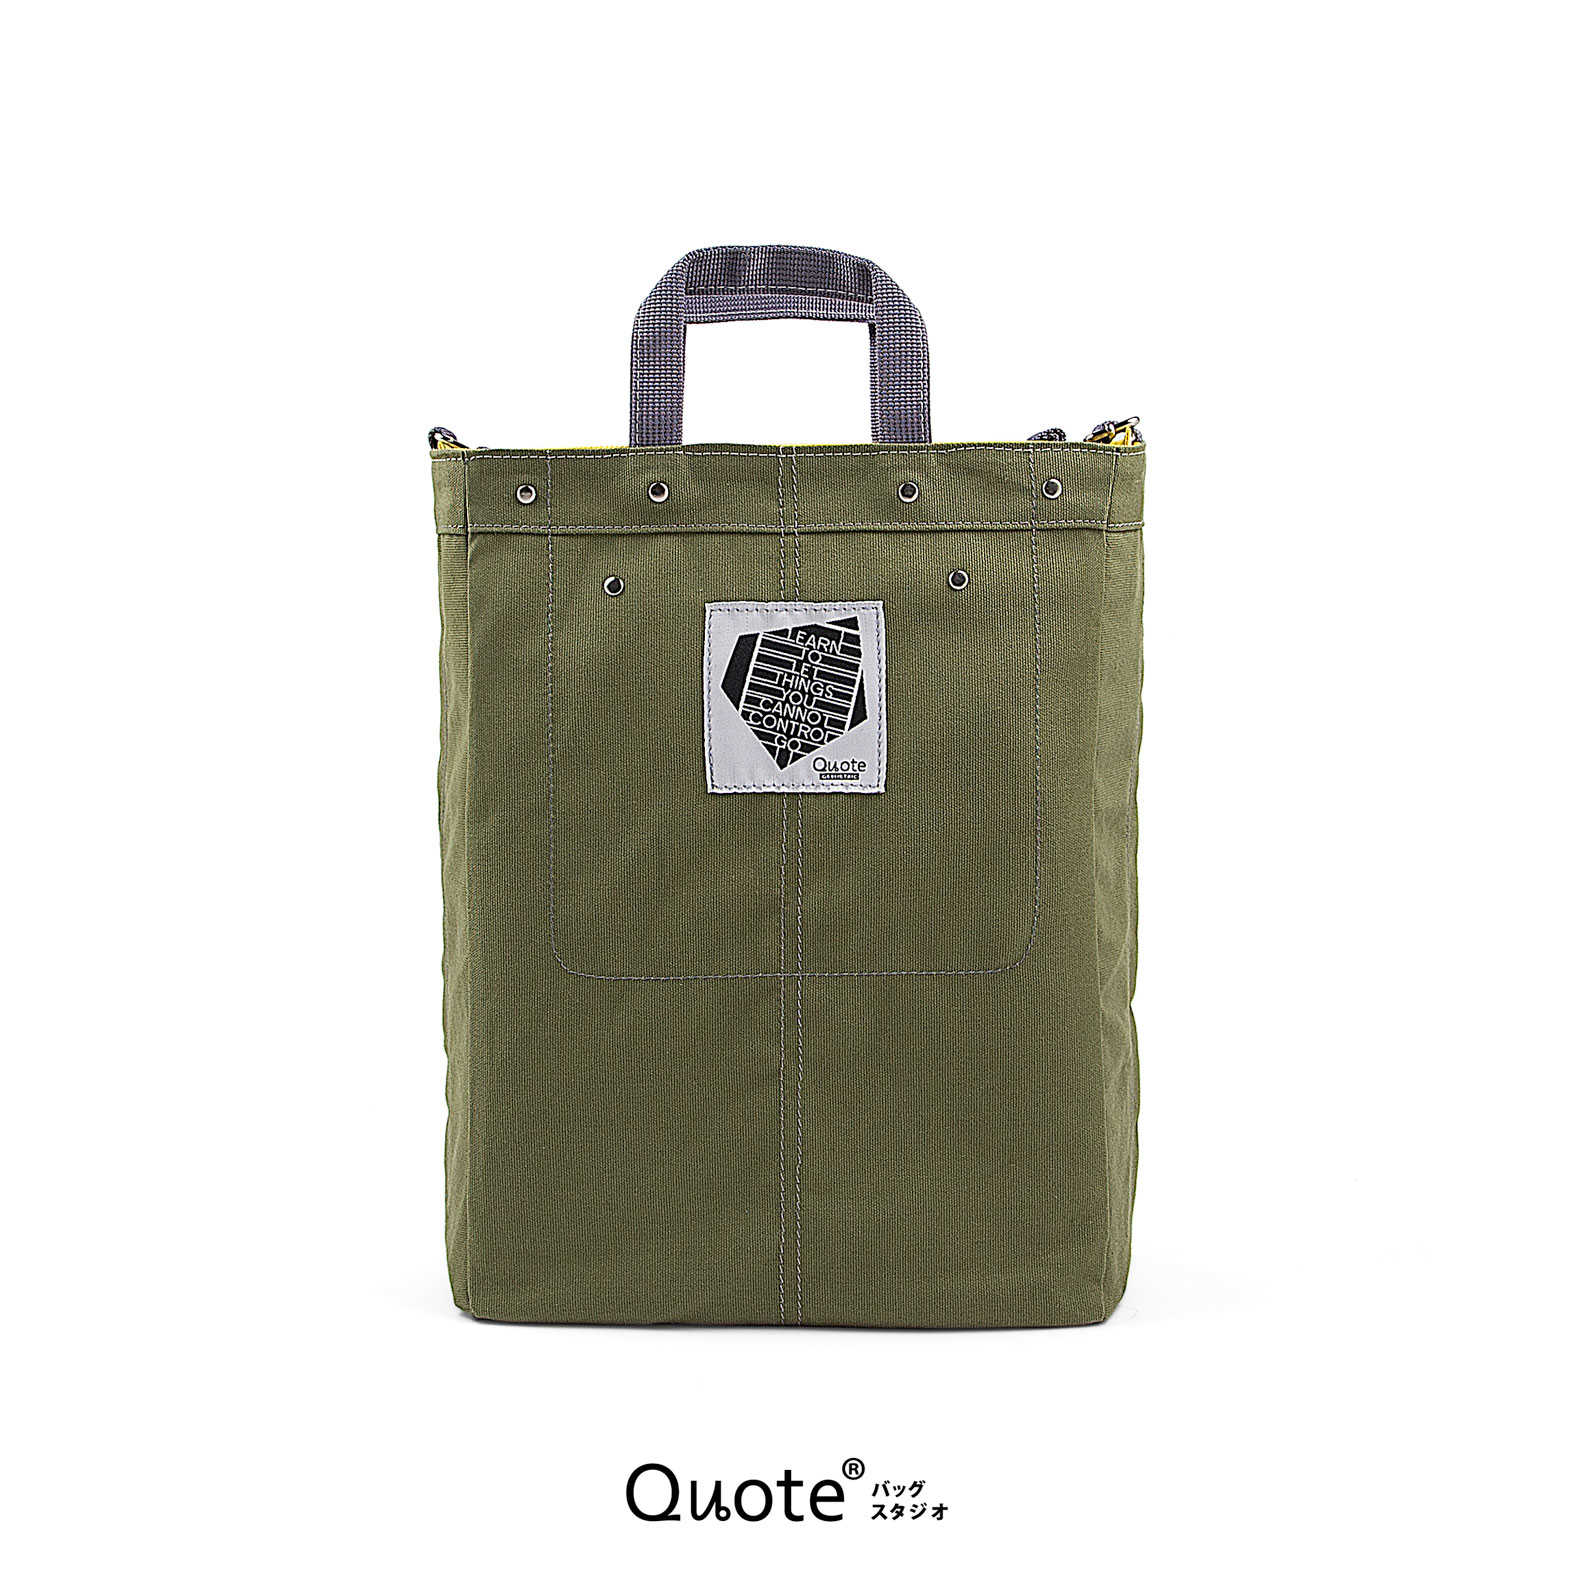 Coss-over bag # M Green/Grey || クロスボディバッグ)